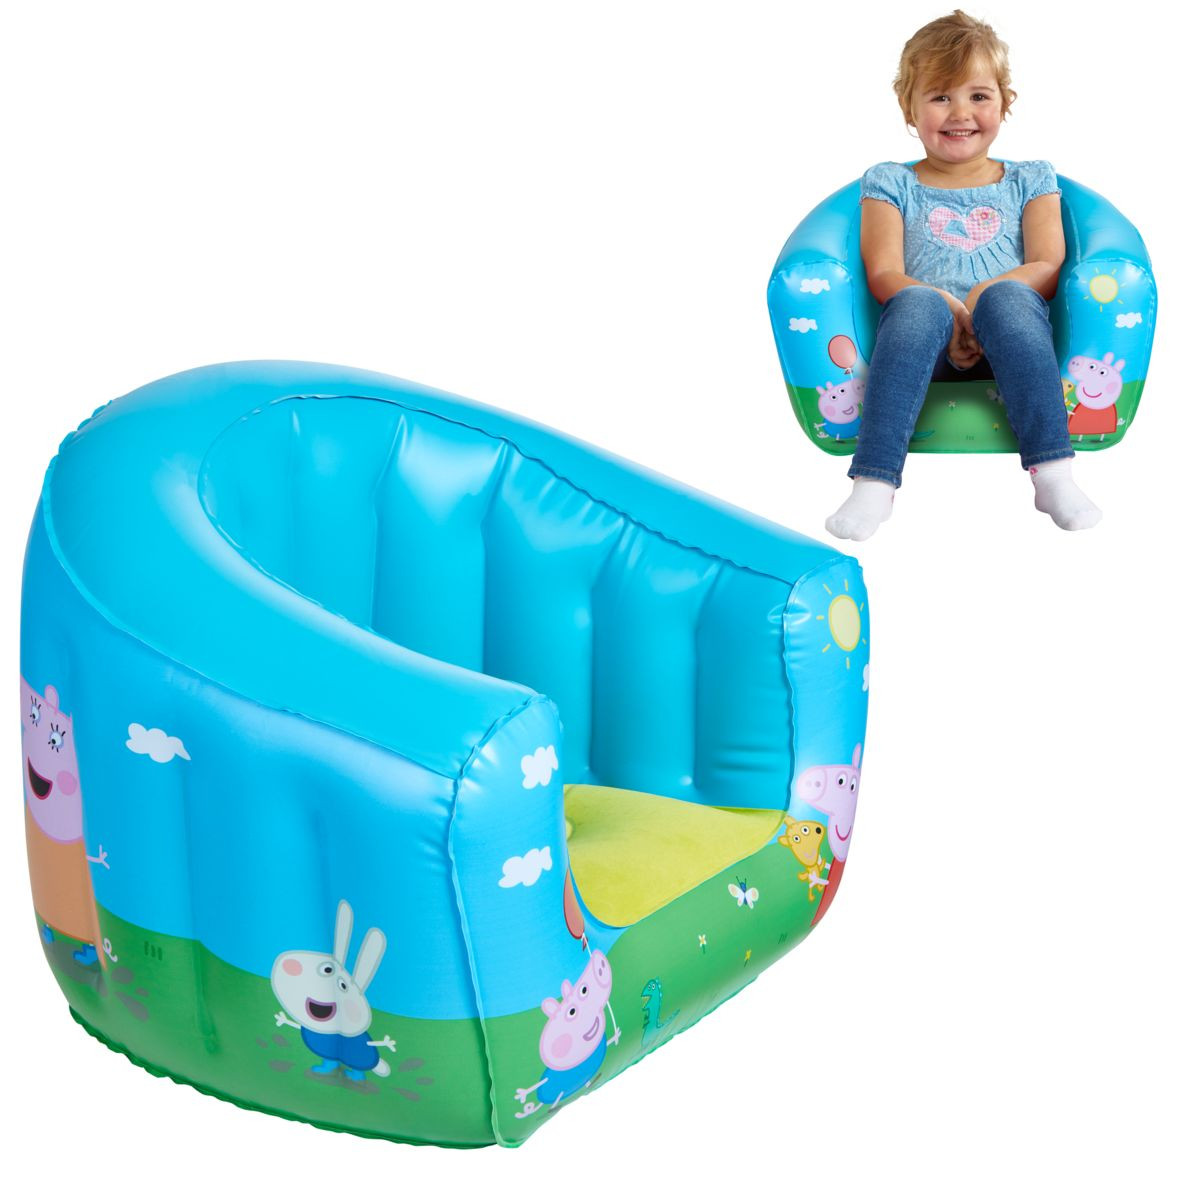 Fauteuil gonflable Peppa Pig